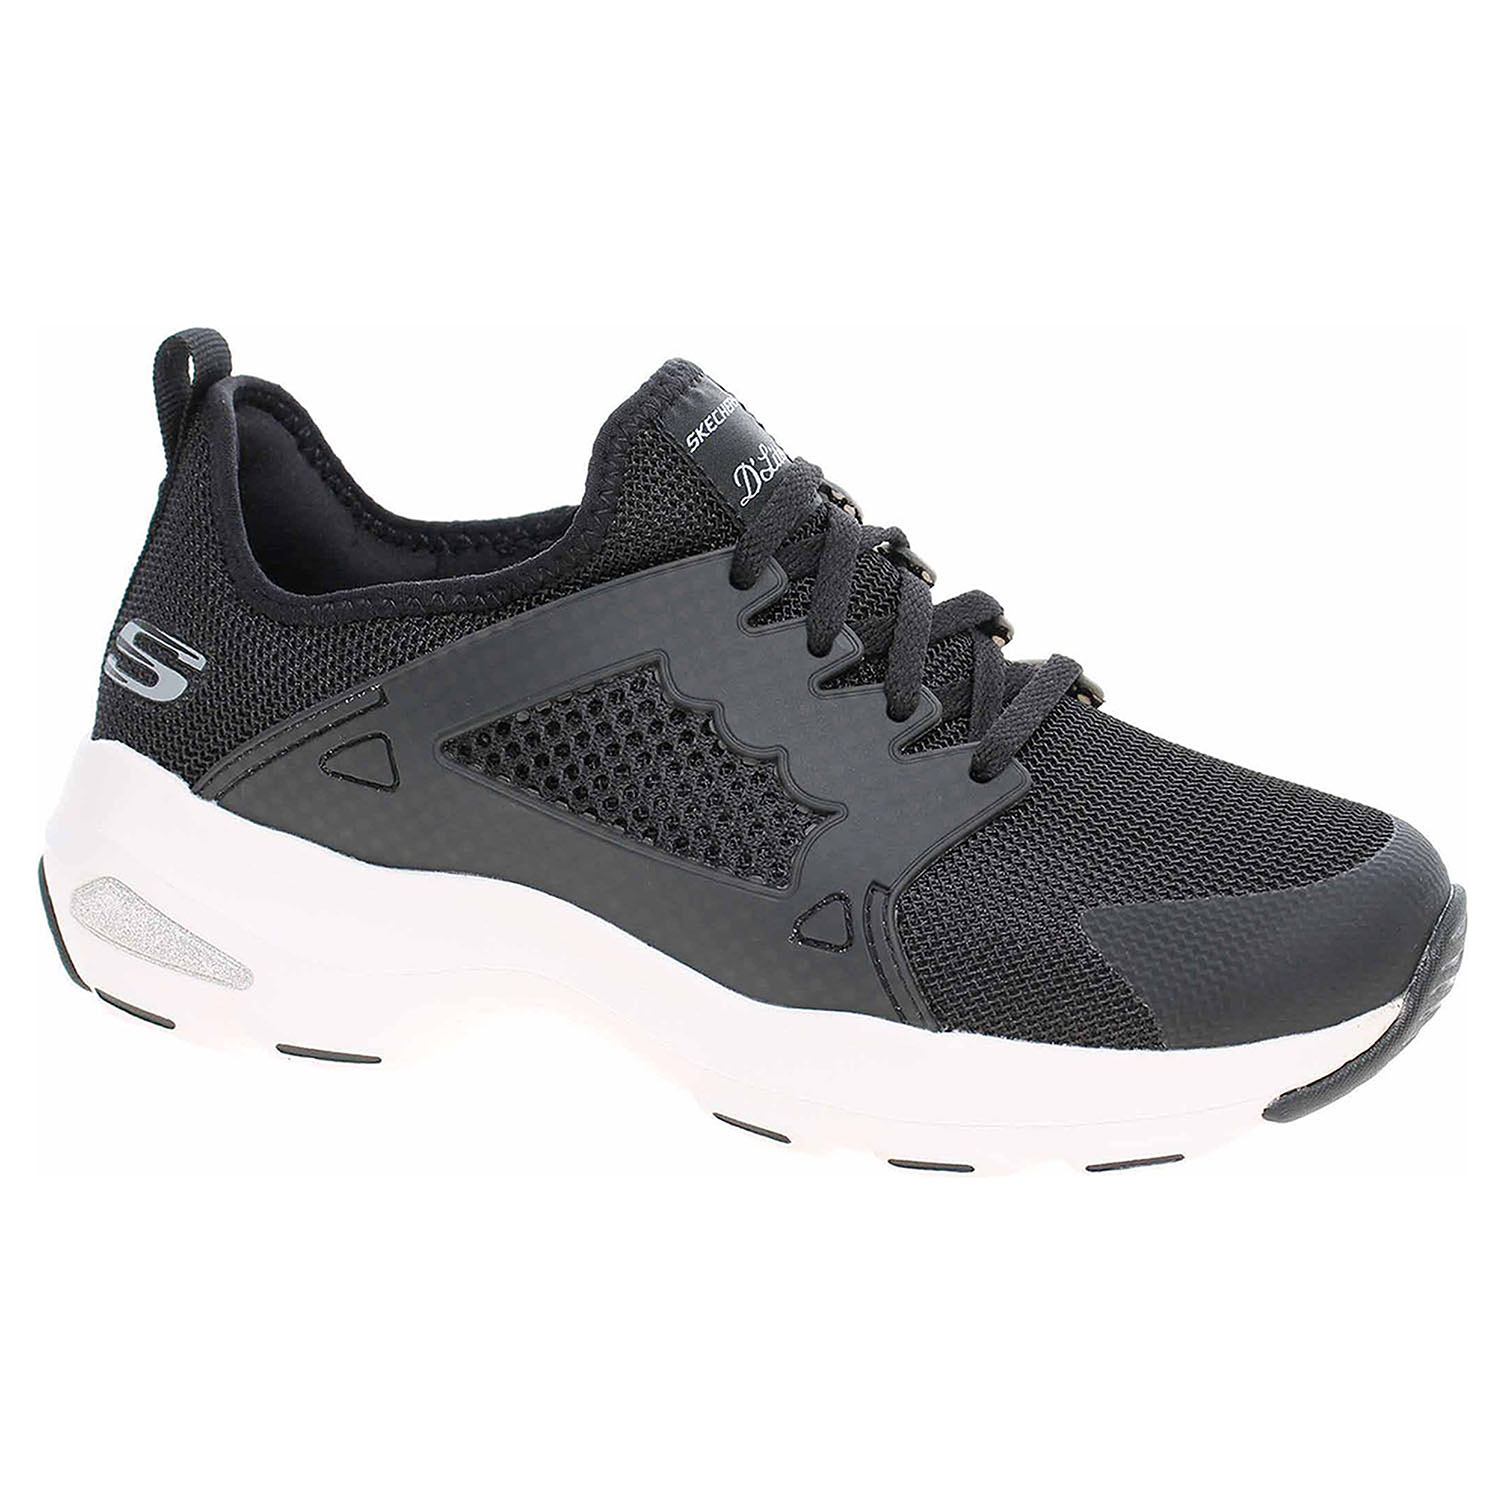 Skechers D´Lite Ultra - At The Top black-white 12861 BKW 39